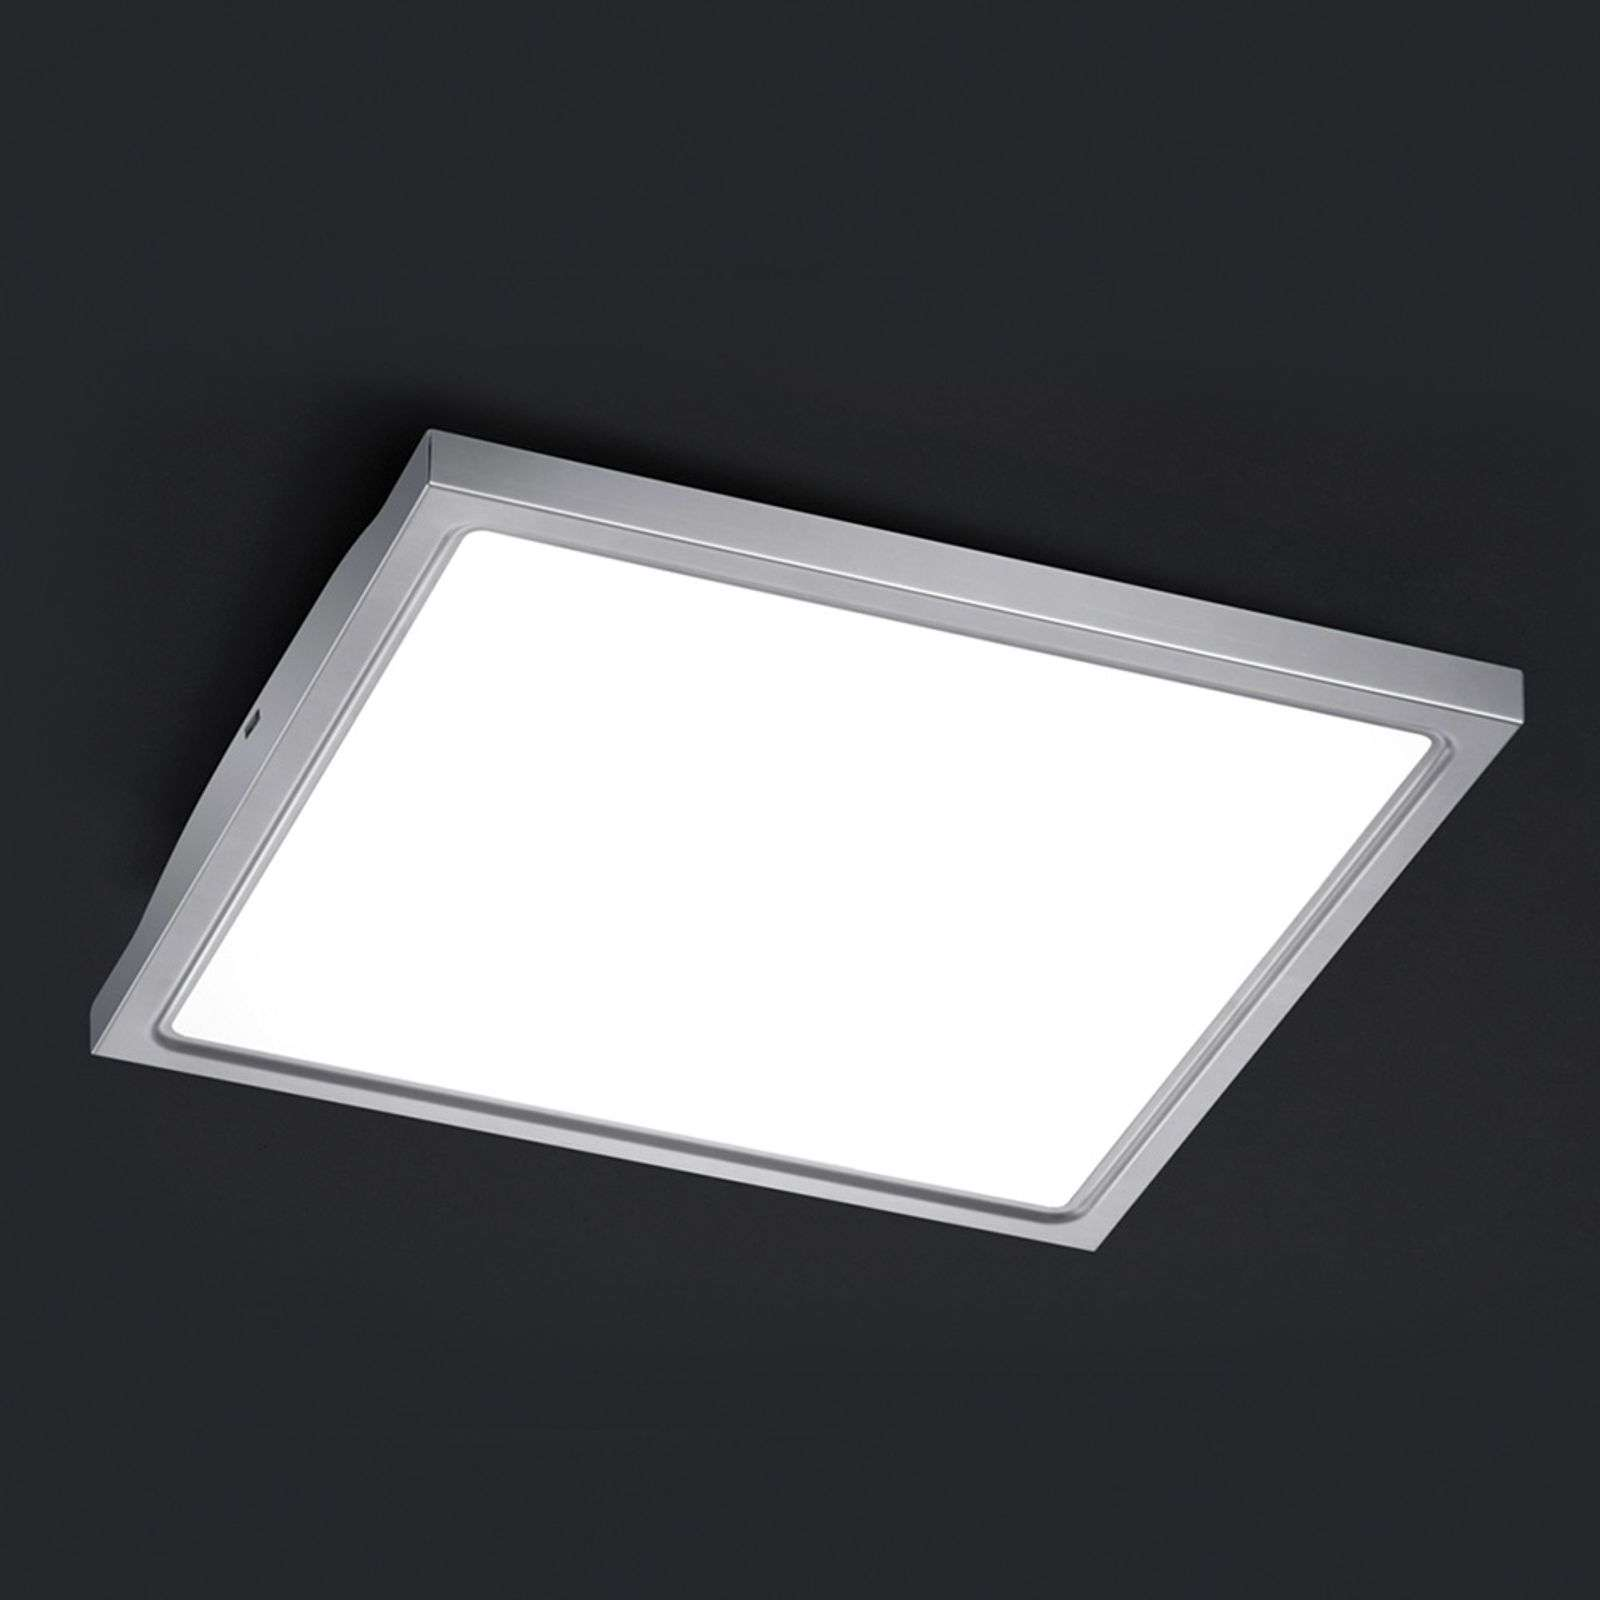 Neutrale LED plafondlamp Future 30 cm